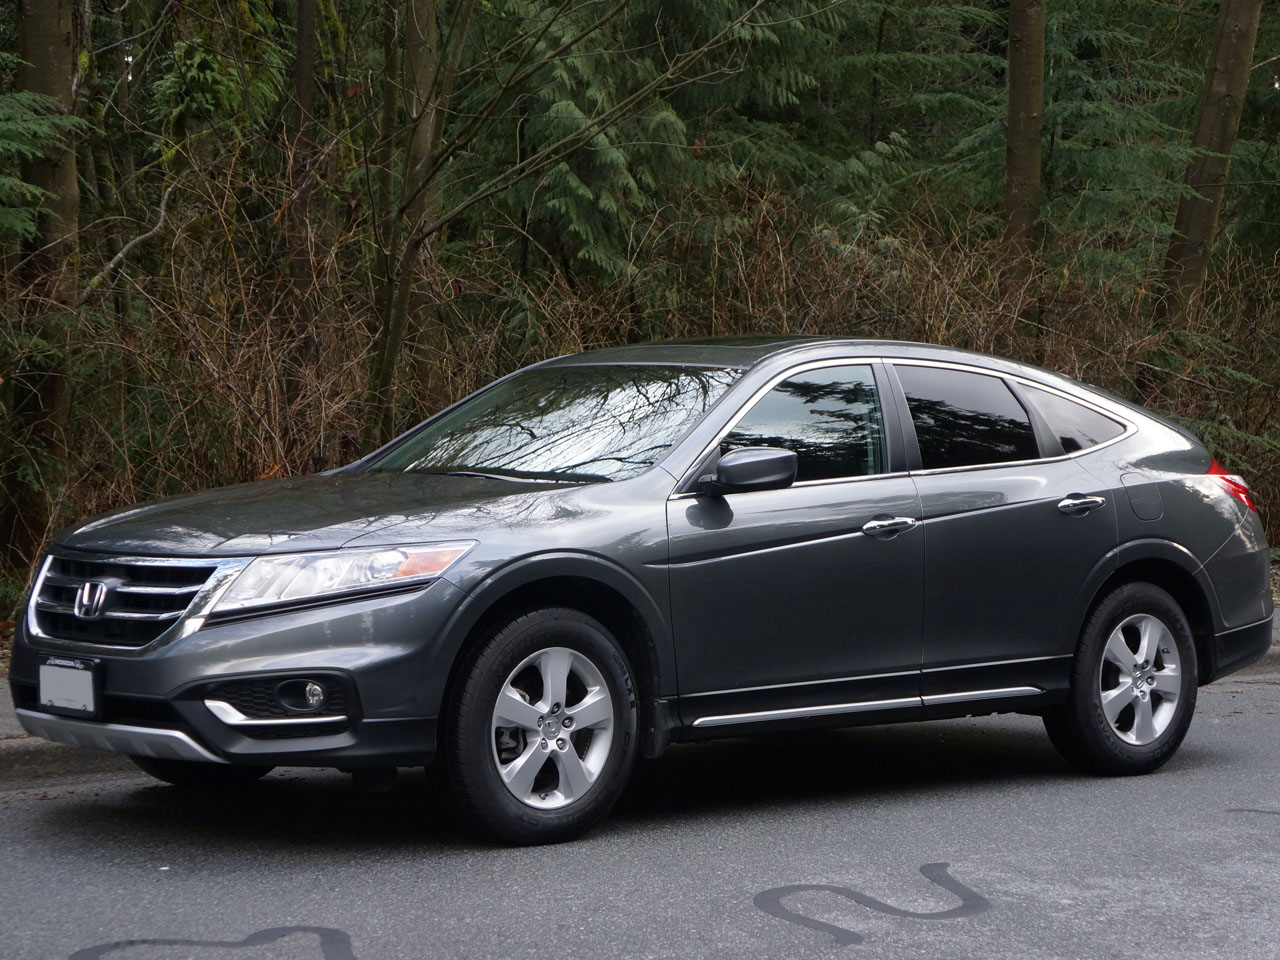 2014 honda crosstour ex l road test review carcostcanada. Black Bedroom Furniture Sets. Home Design Ideas